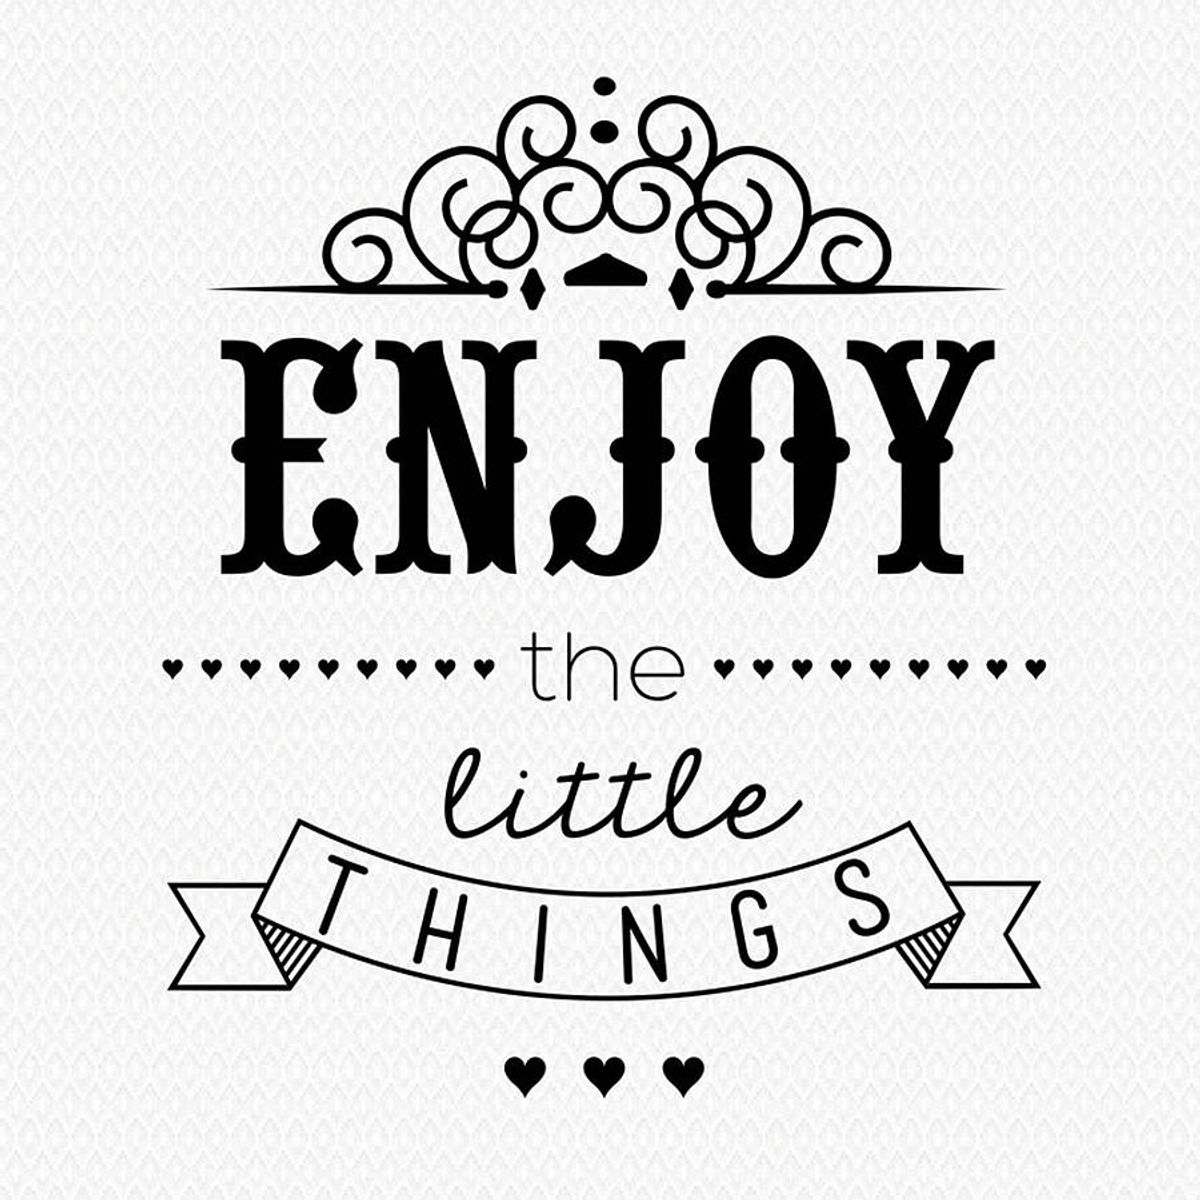 75 Little Things To Be Thankful For